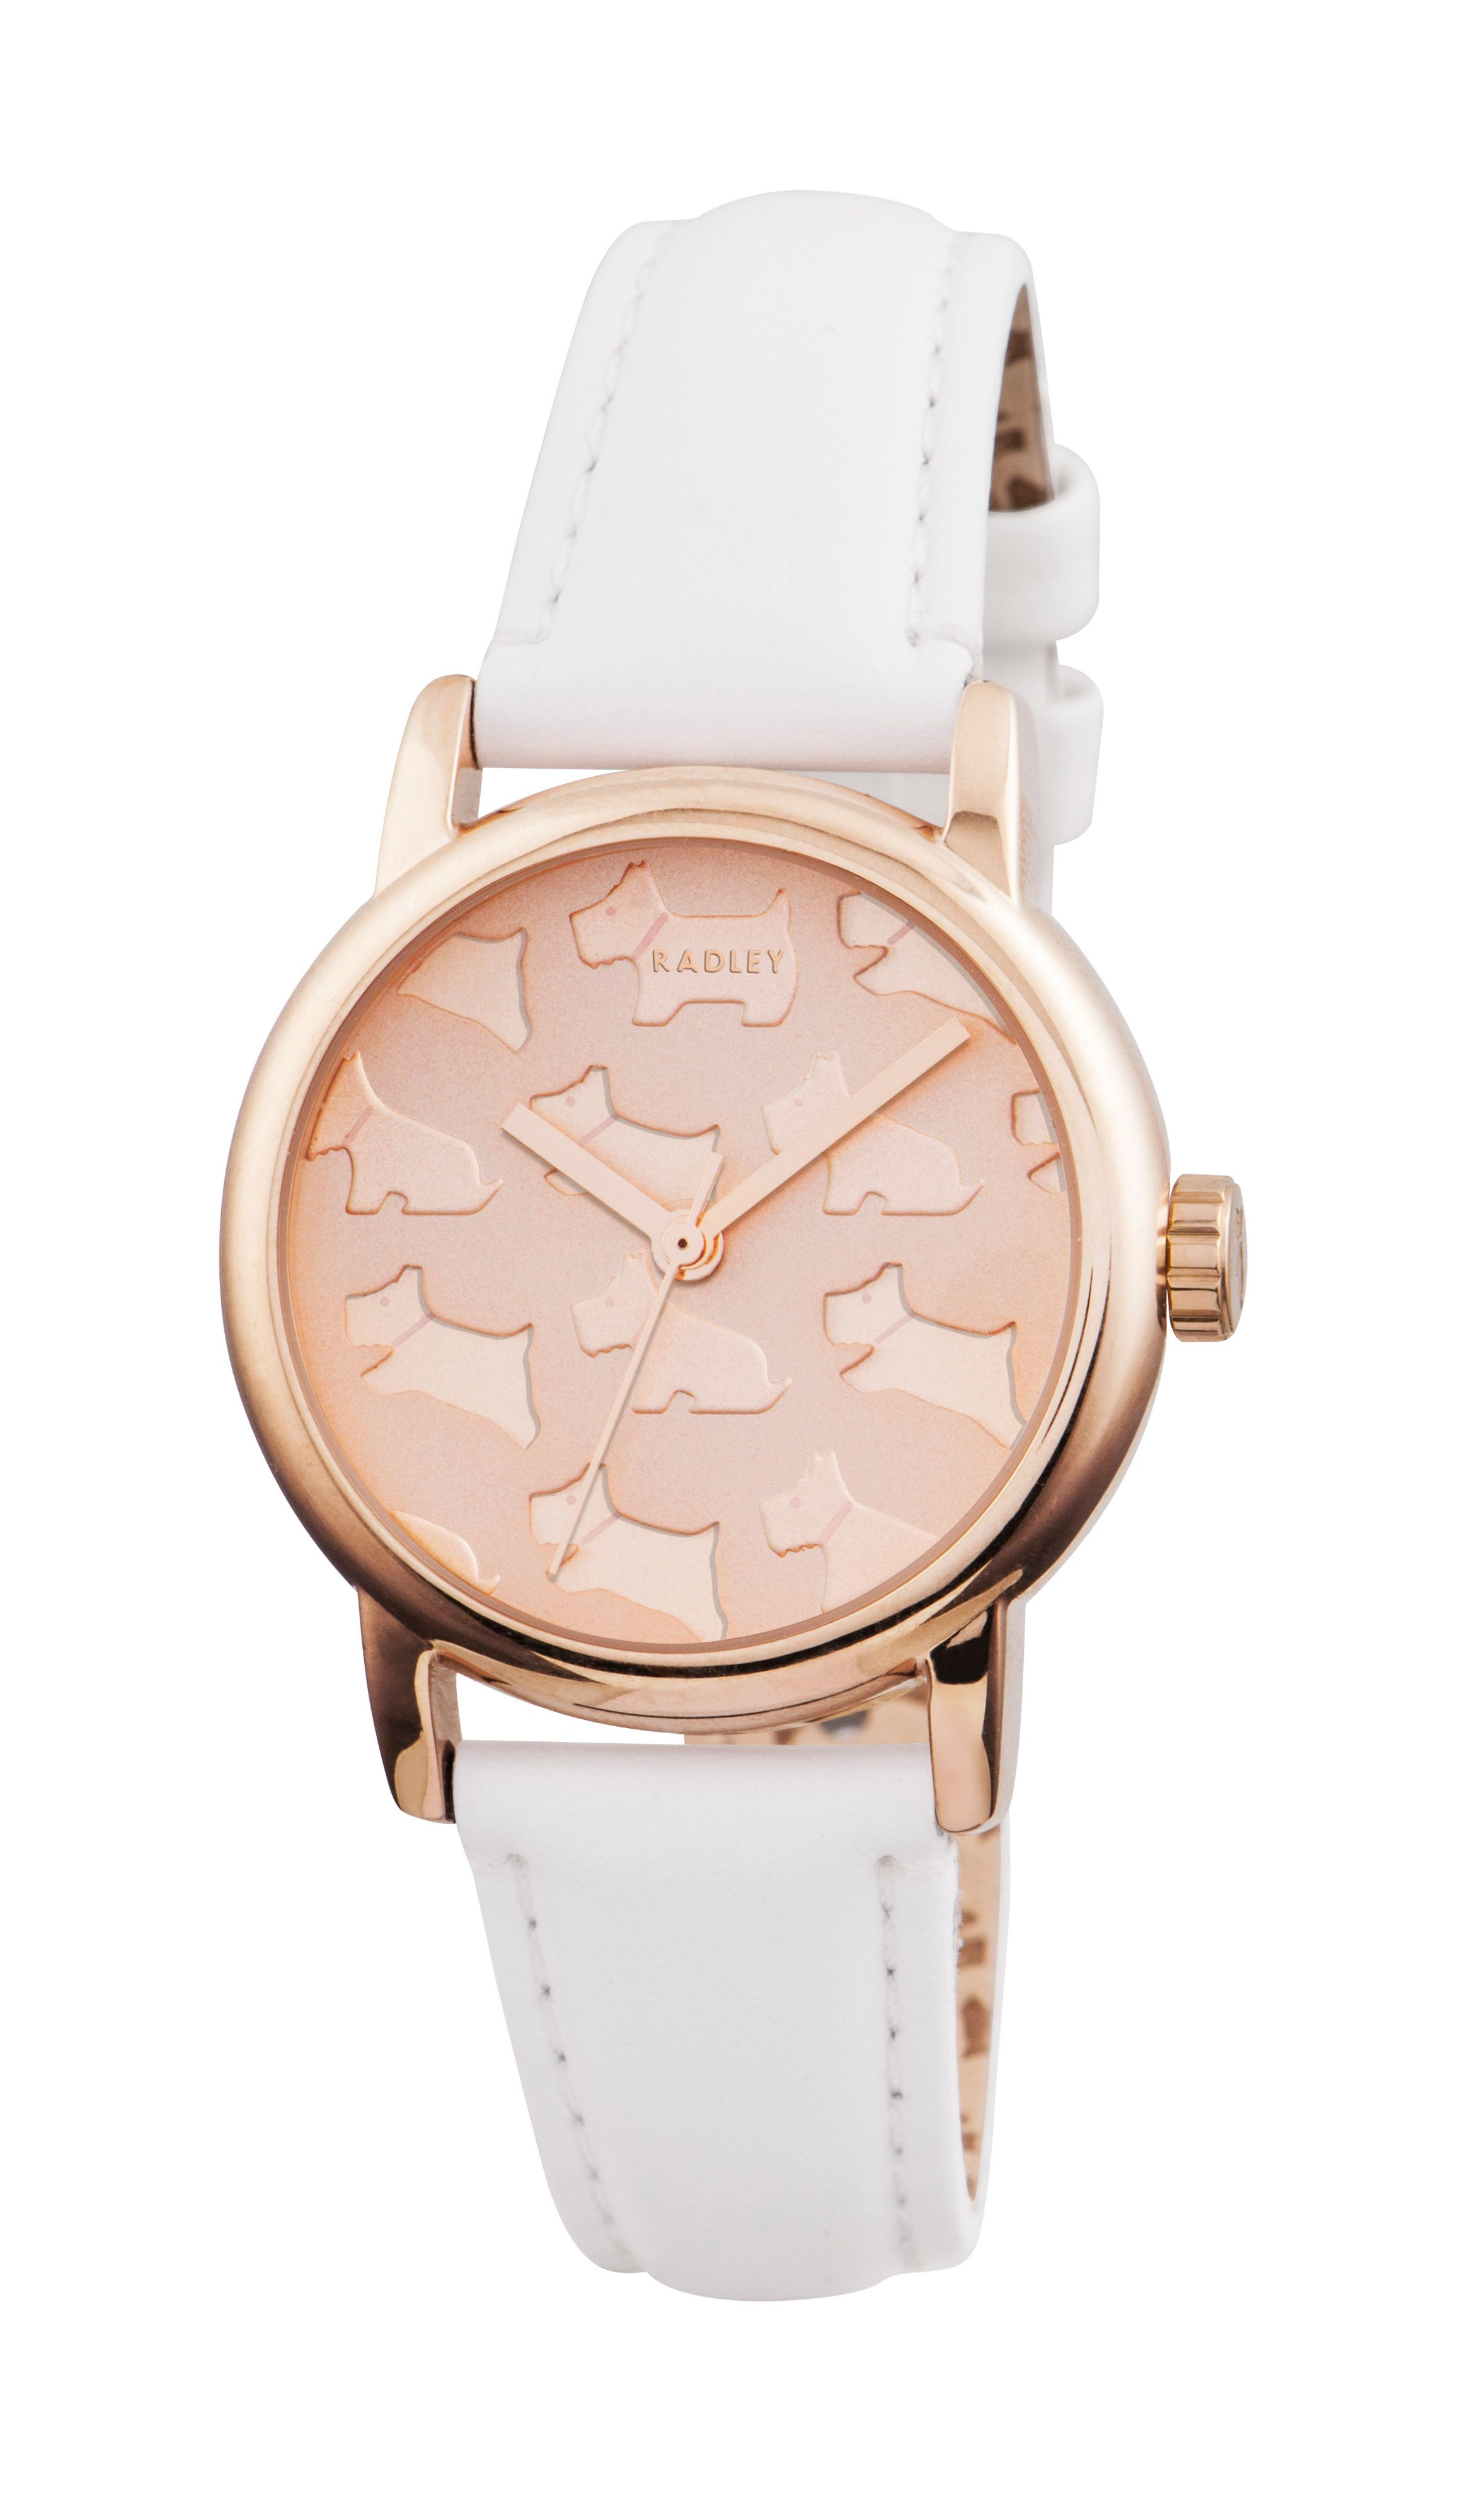 RY2232 white leather strap ladies watch